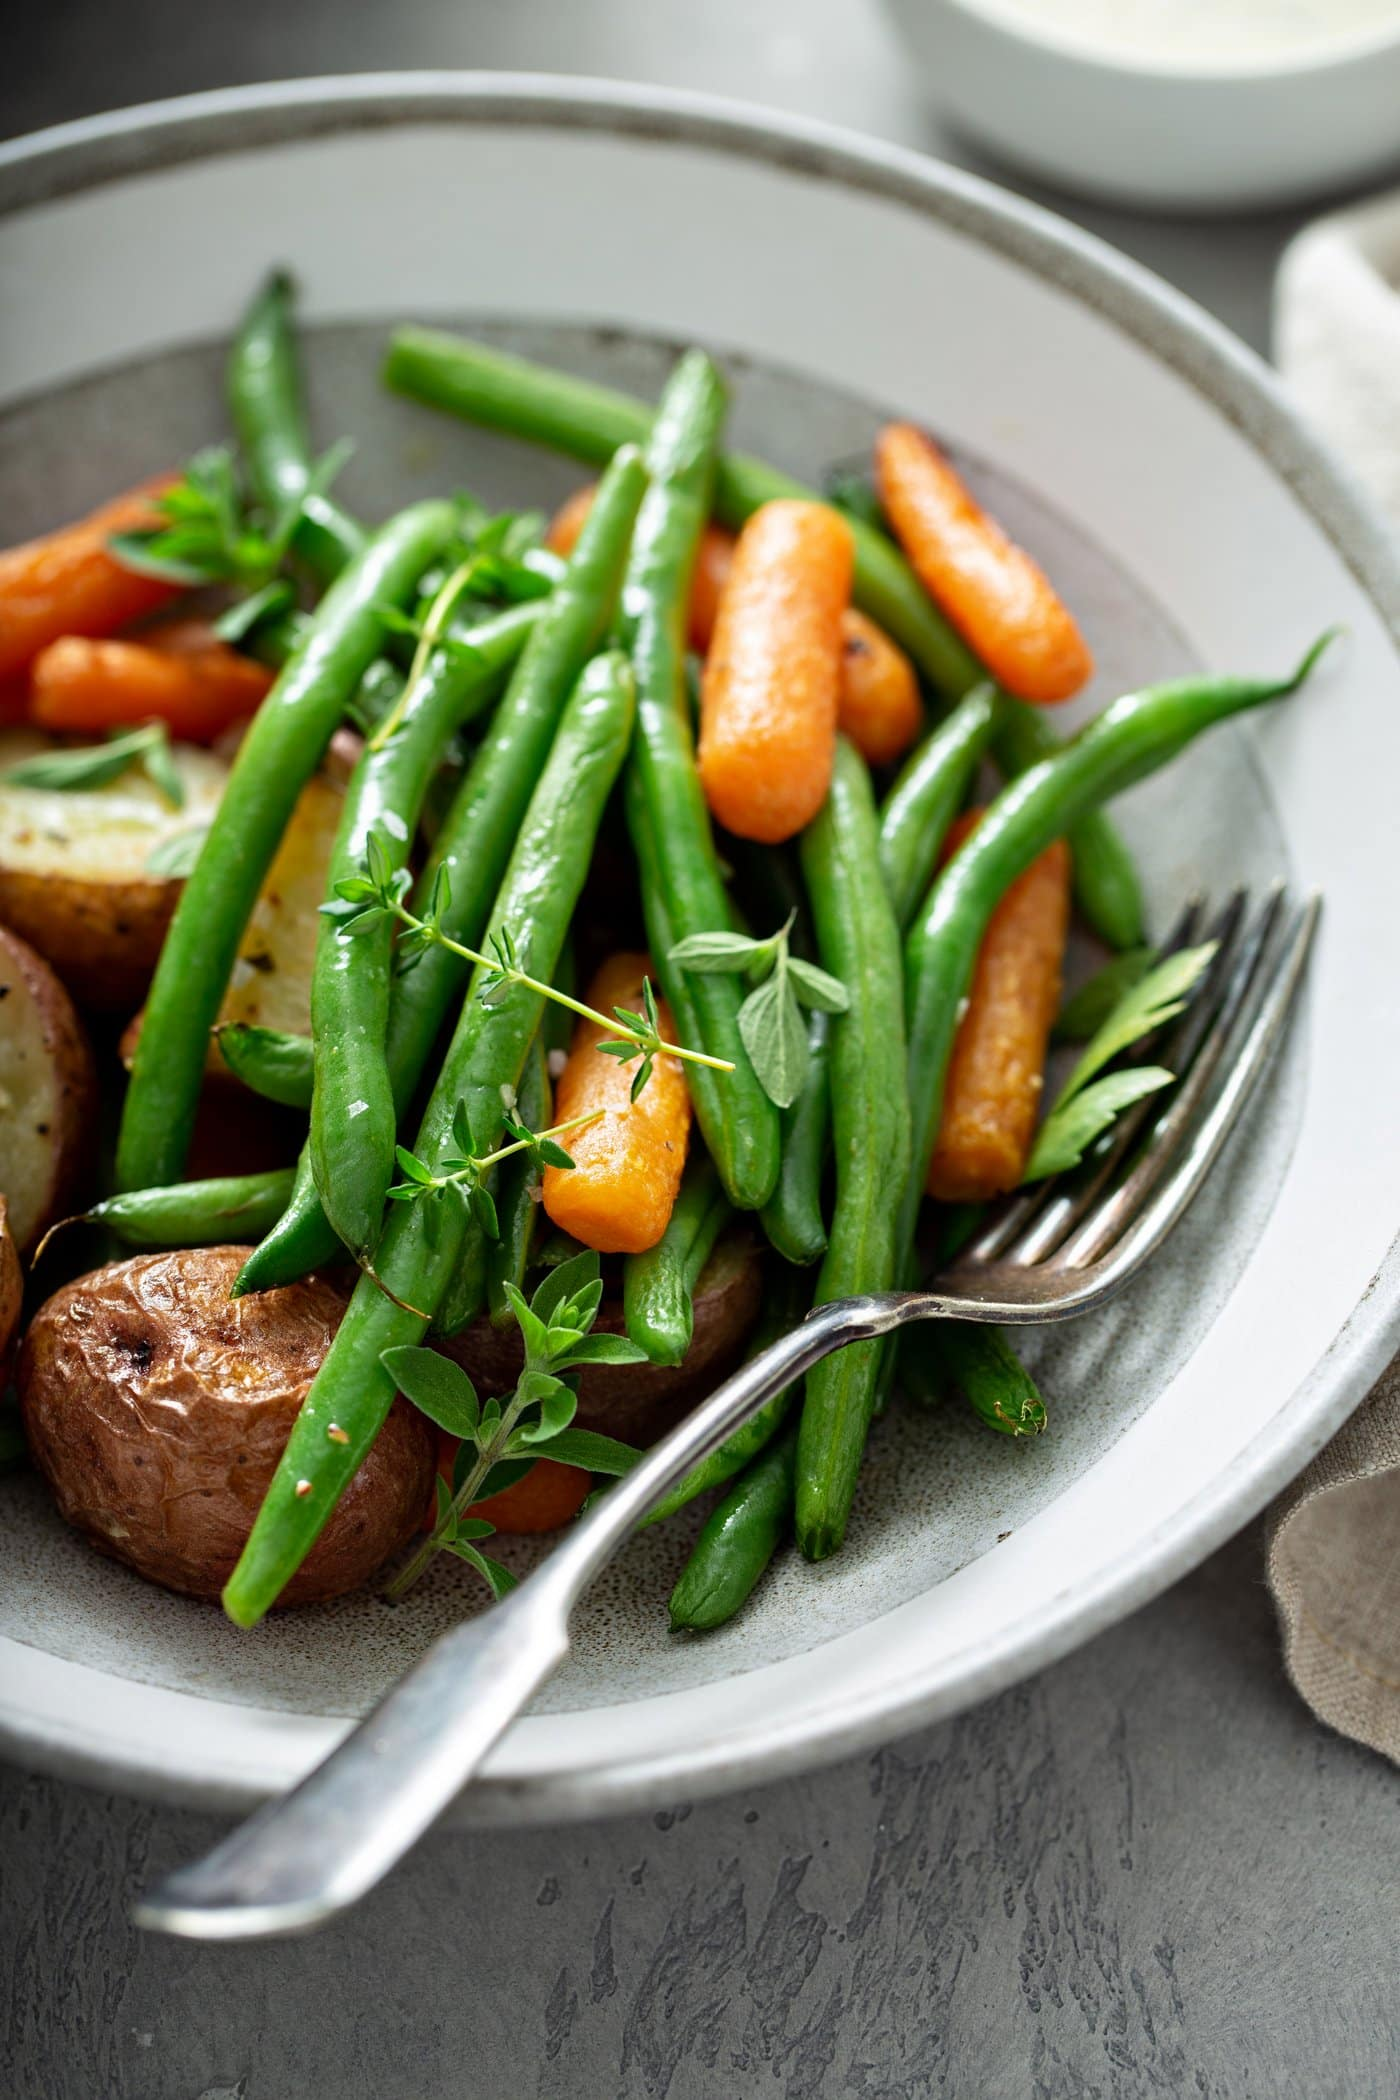 A dinner plate of garlic herb roasted potatoes, carrots and green beans. A fork is laying on the plate next to the vegetables, and they are topped with fresh thyme.